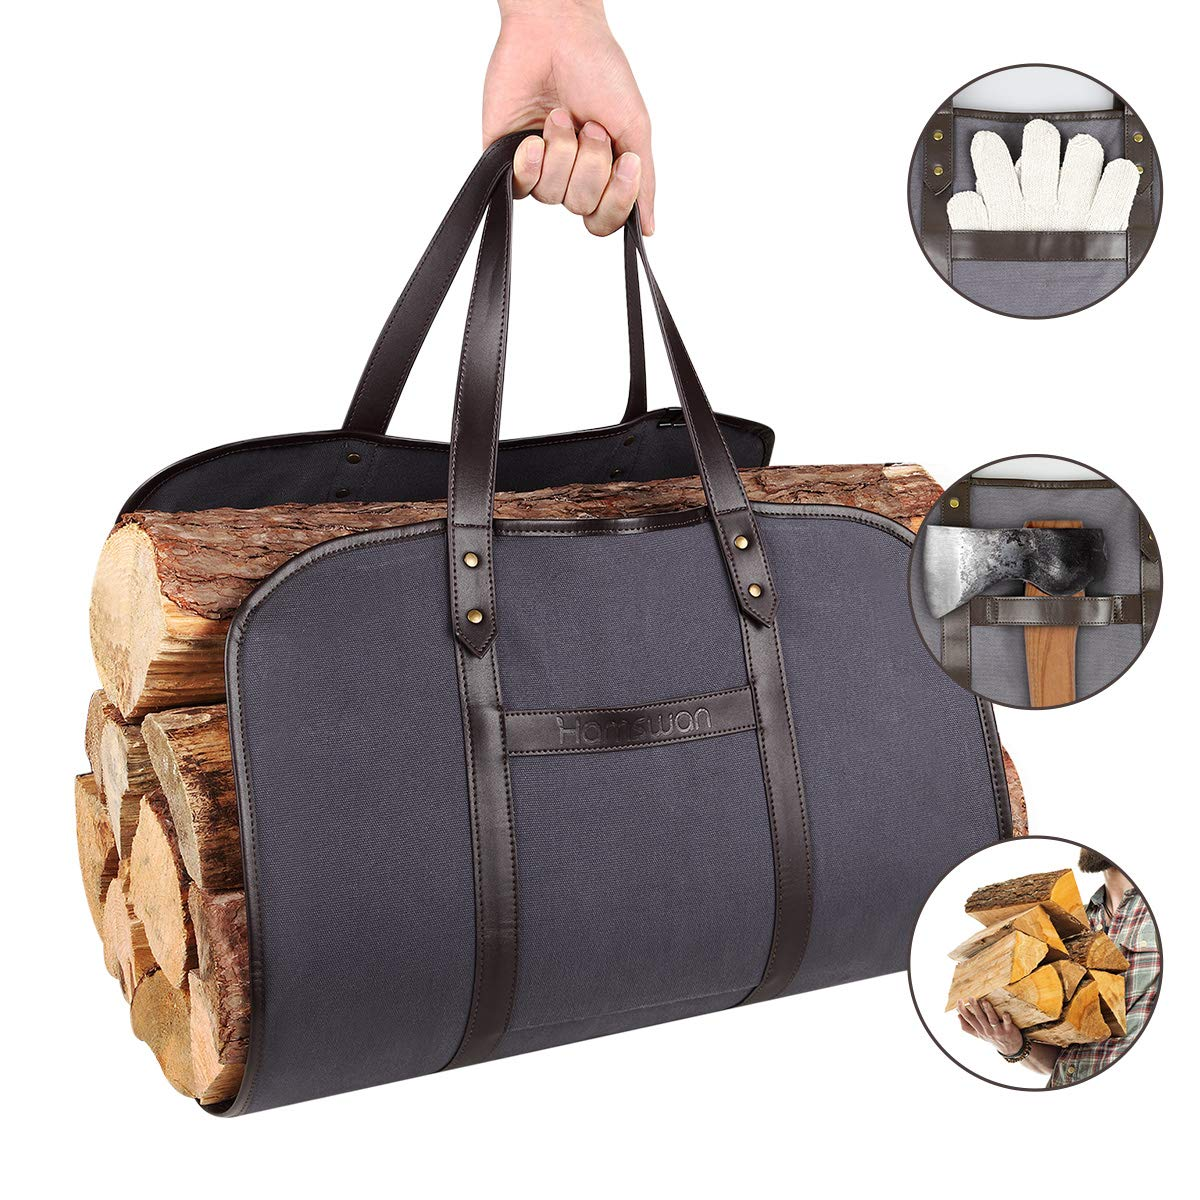 Waxed Canvas Firewood Carrier, HAMSWAN Fireplace Sturdy Wood Carring Bag with Handles Gloves for Camping Indoor Firewood Logs Tote Holder Birchwood Stand by HAMSWAN